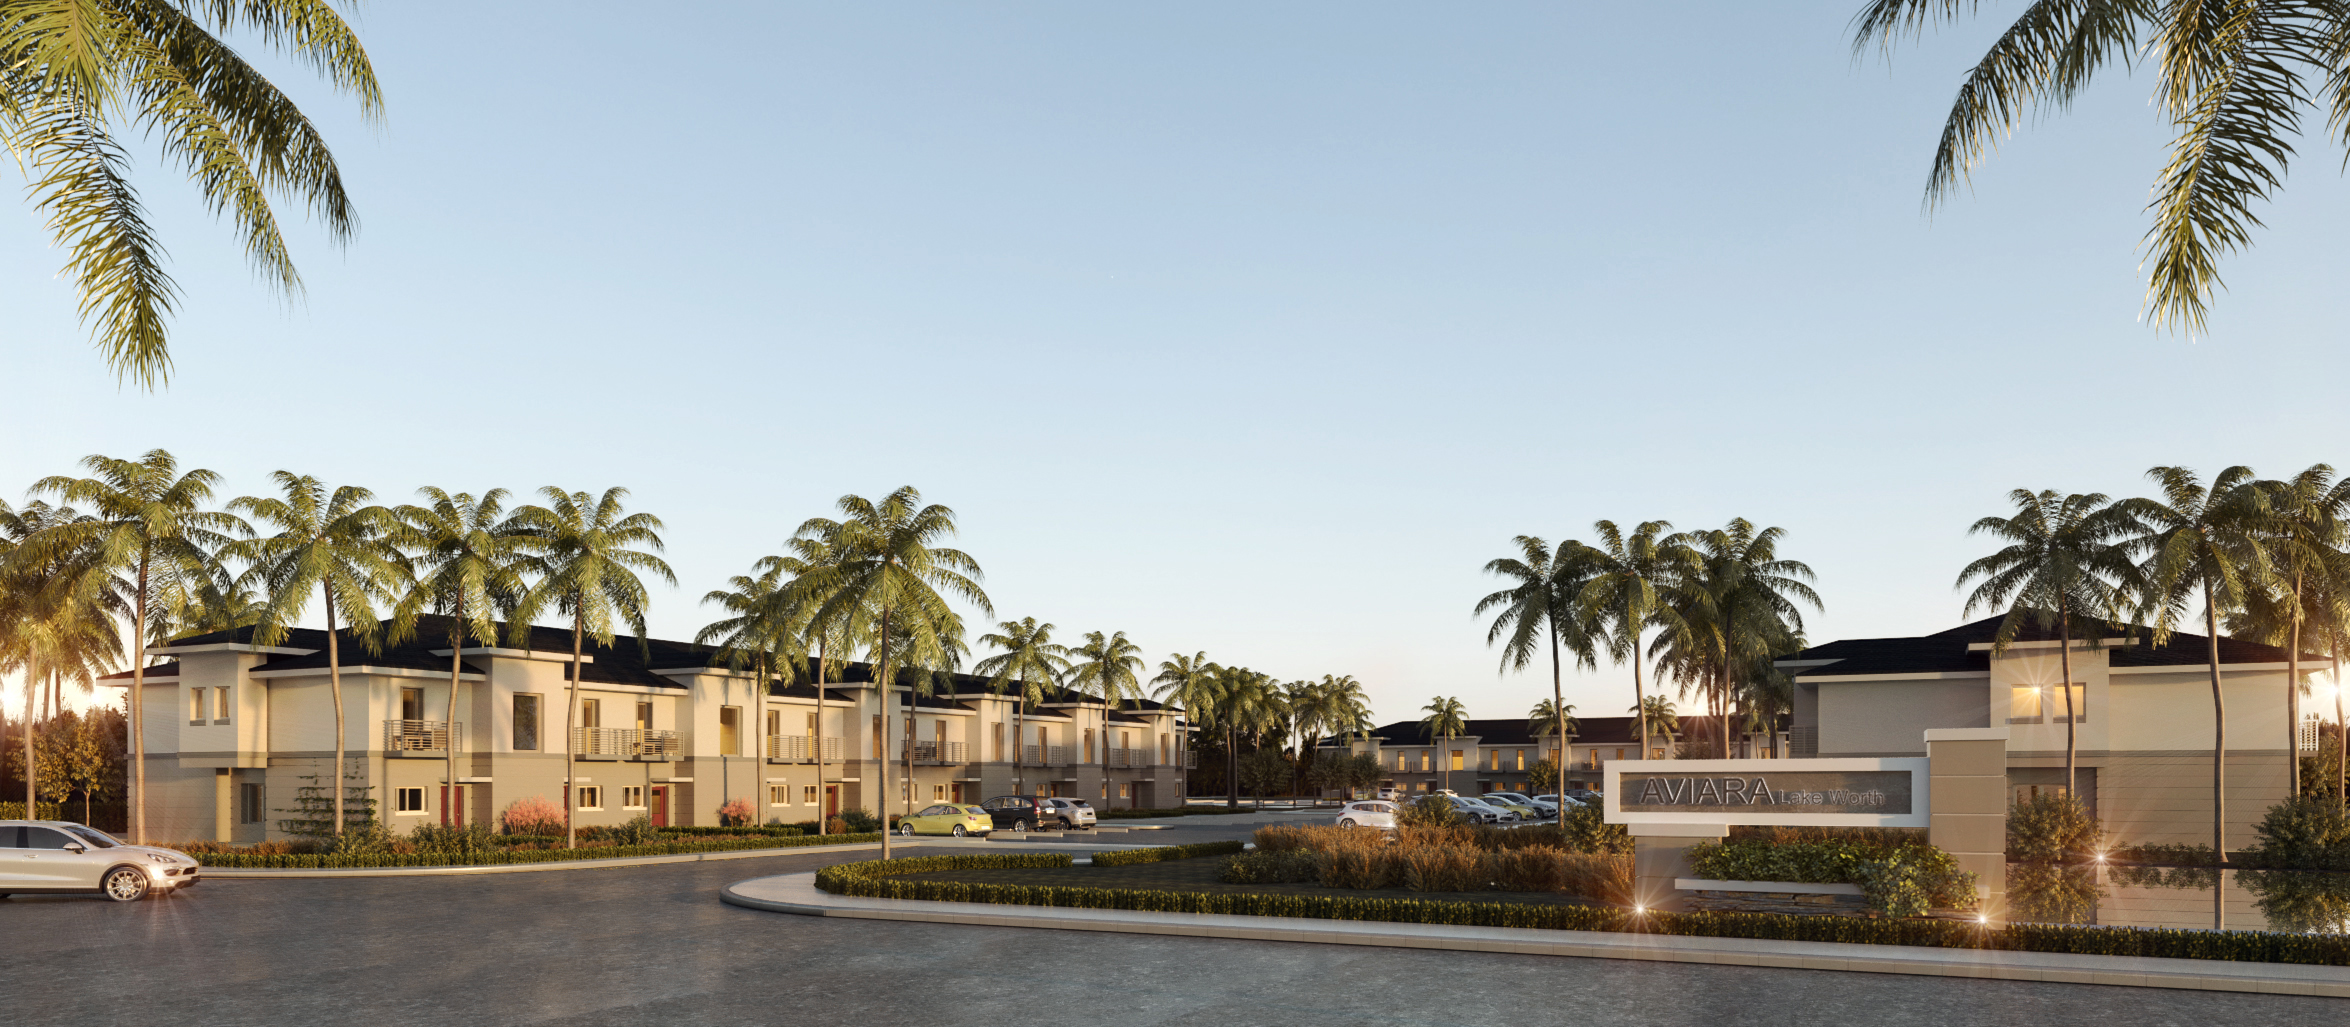 1 Aviara Lake Worth - ArqRender F.jpg